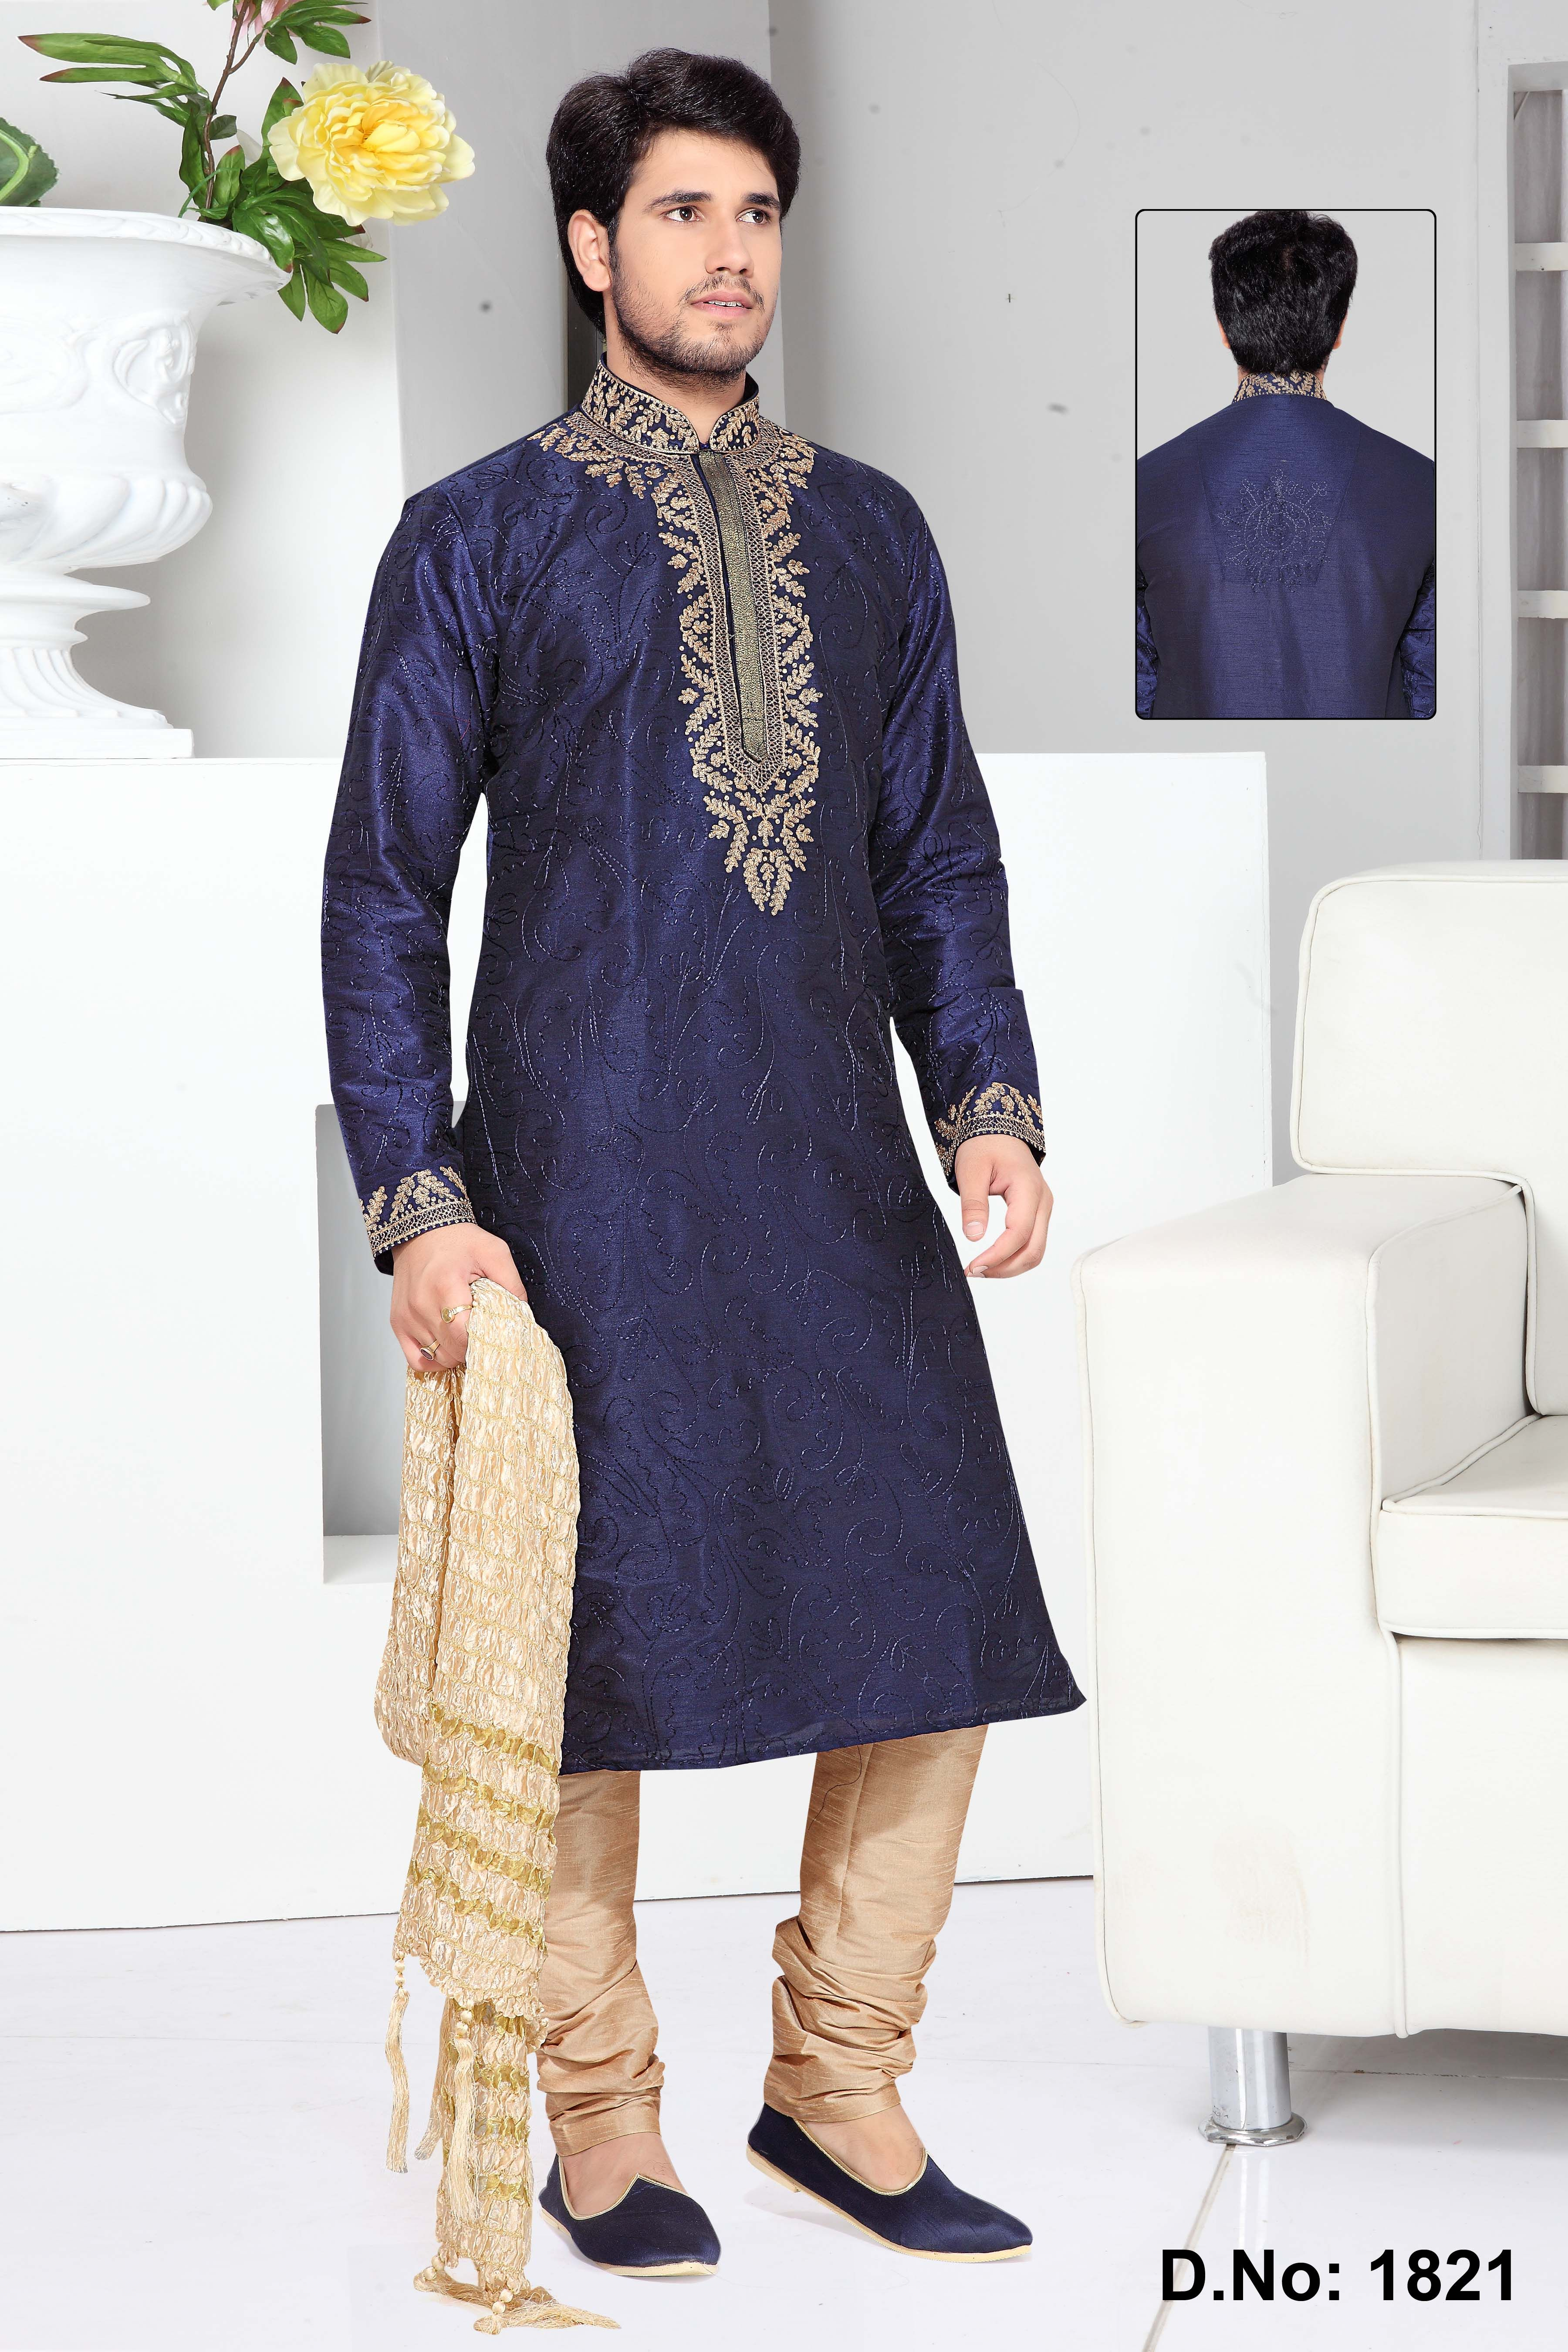 Groom kurta suits black wedding kurta designs asifa and nabeel men - Shake Off All Your Dark Moods And Brighten Your Day With This Navy Blue Art Silk Men S Kurta Pyjama The Ethnic Resham And Stones Work For Kurta Adds A Sign